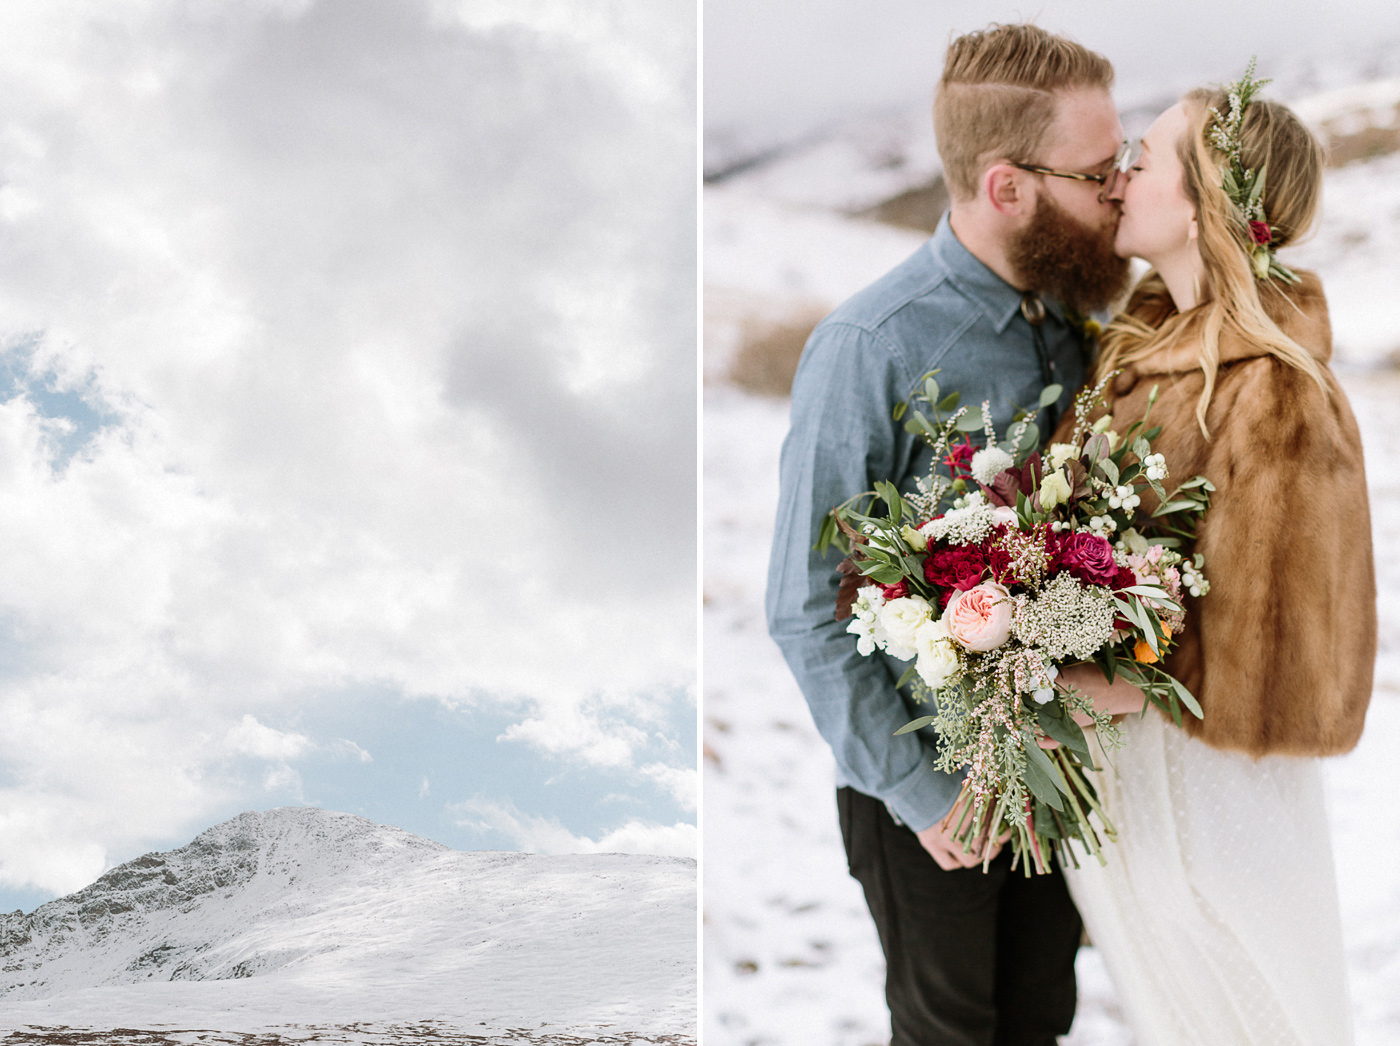 Guanella Pass bride and groom kissing with flowers